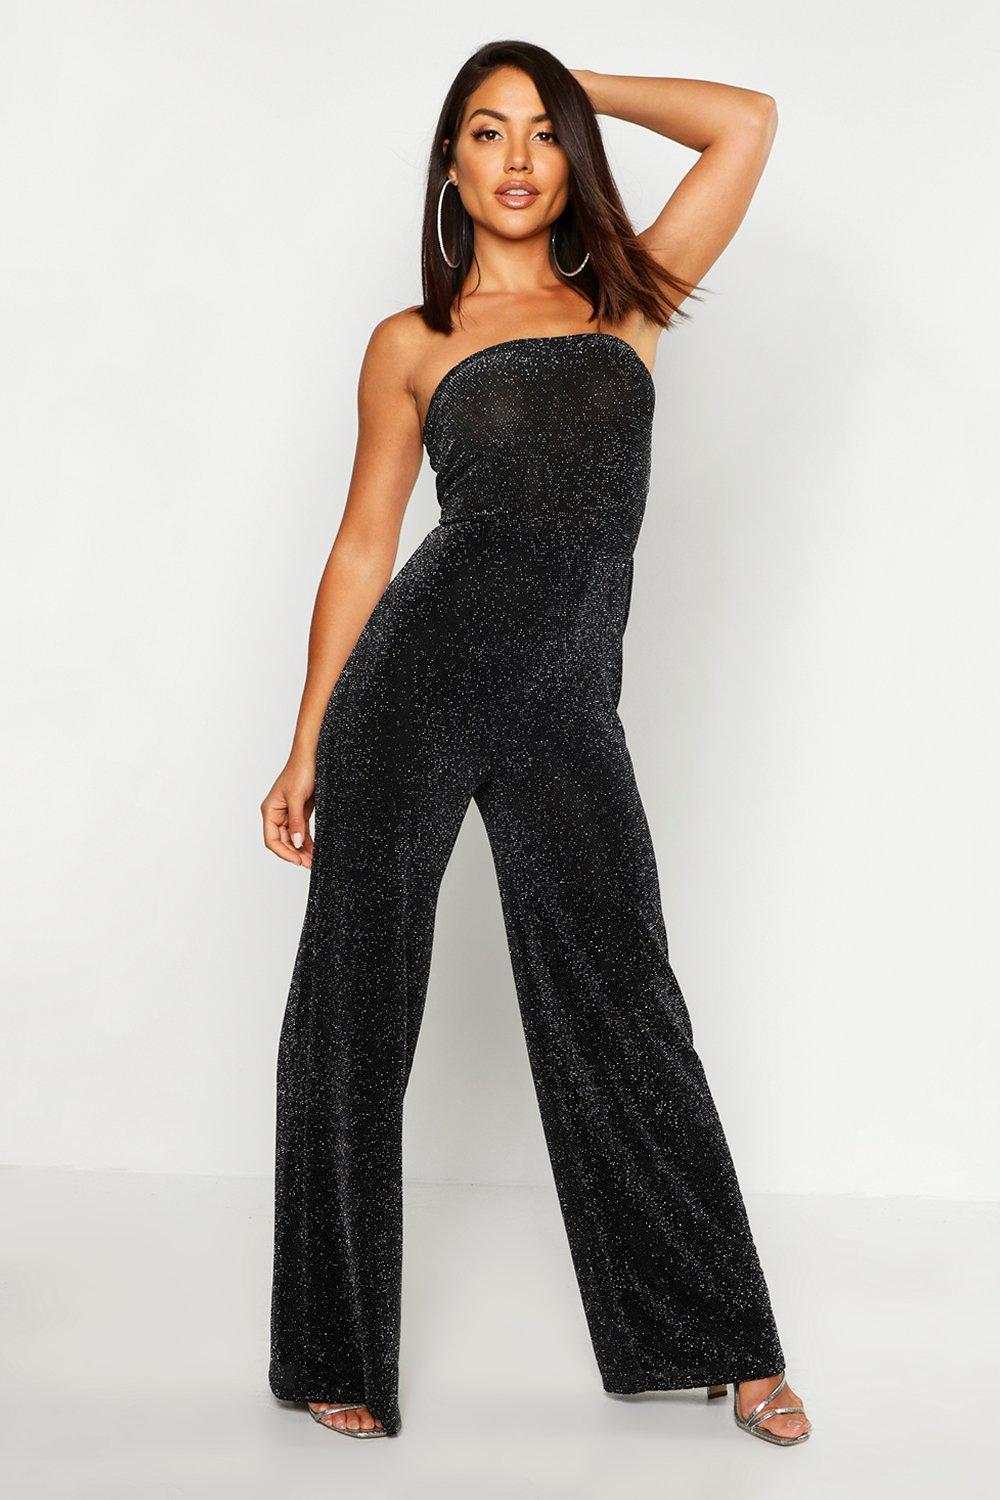 Vintage High Waisted Trousers, Sailor Pants, Jeans Womens Strapless Wide Leg Sparkle Jumpsuit - black - 14 $42.00 AT vintagedancer.com